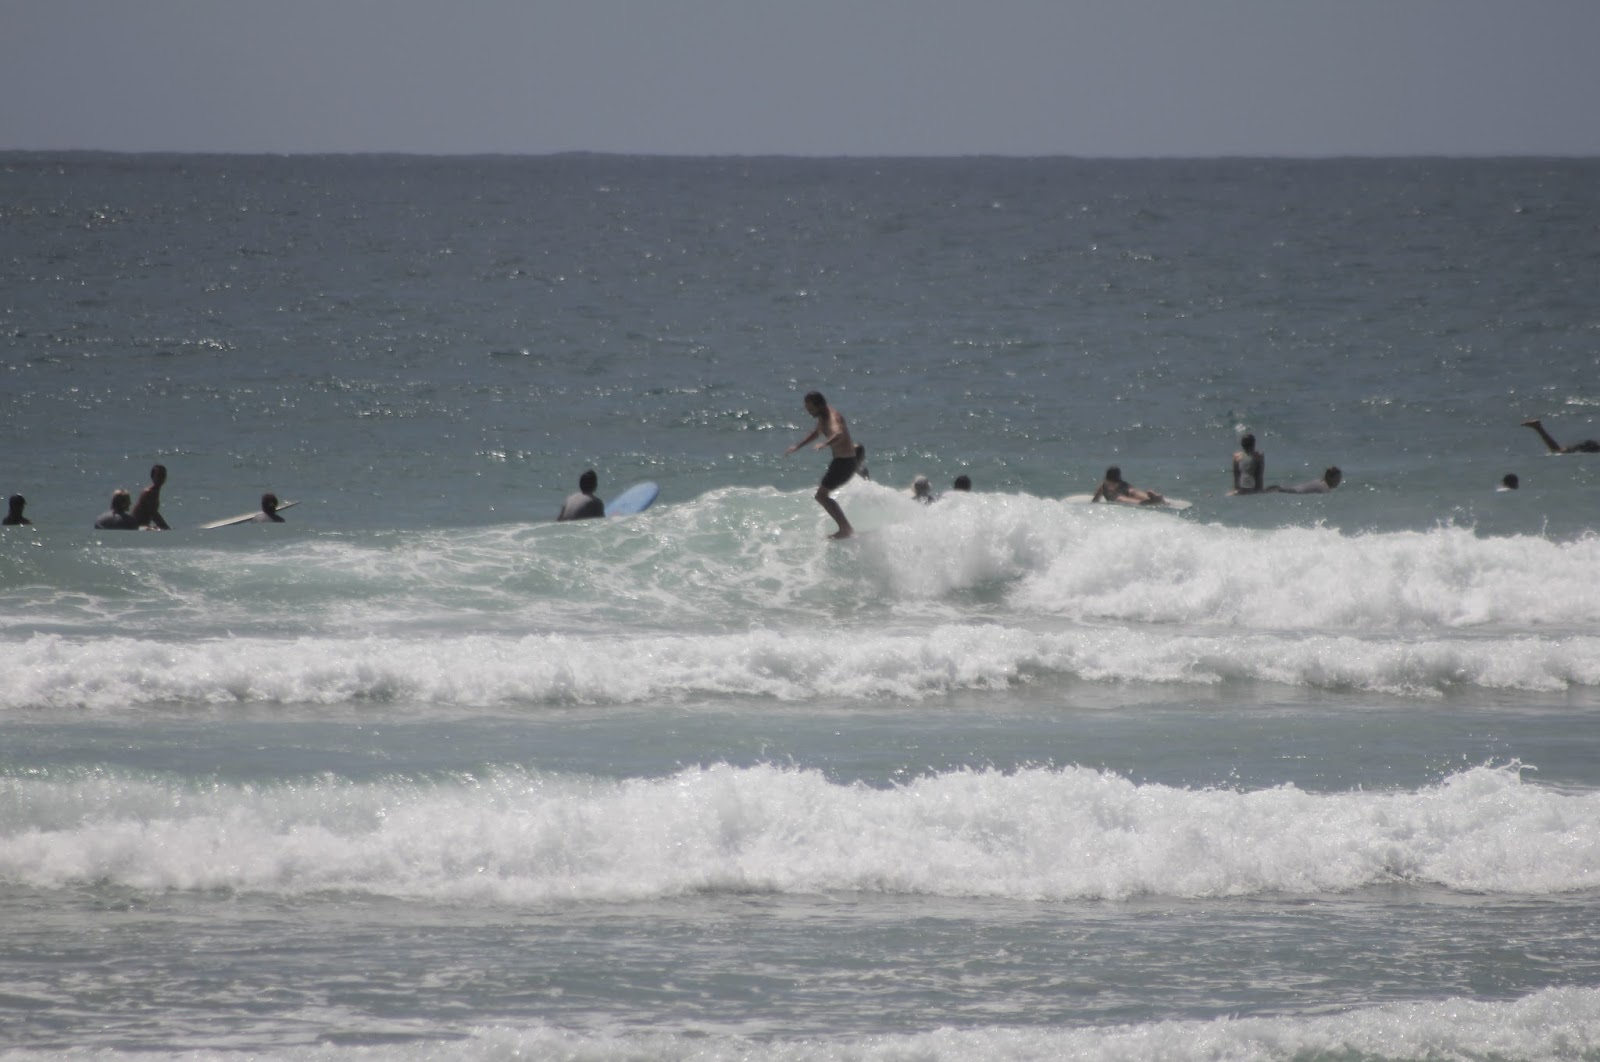 11-03-2016-australia-siebert-surfboards-02